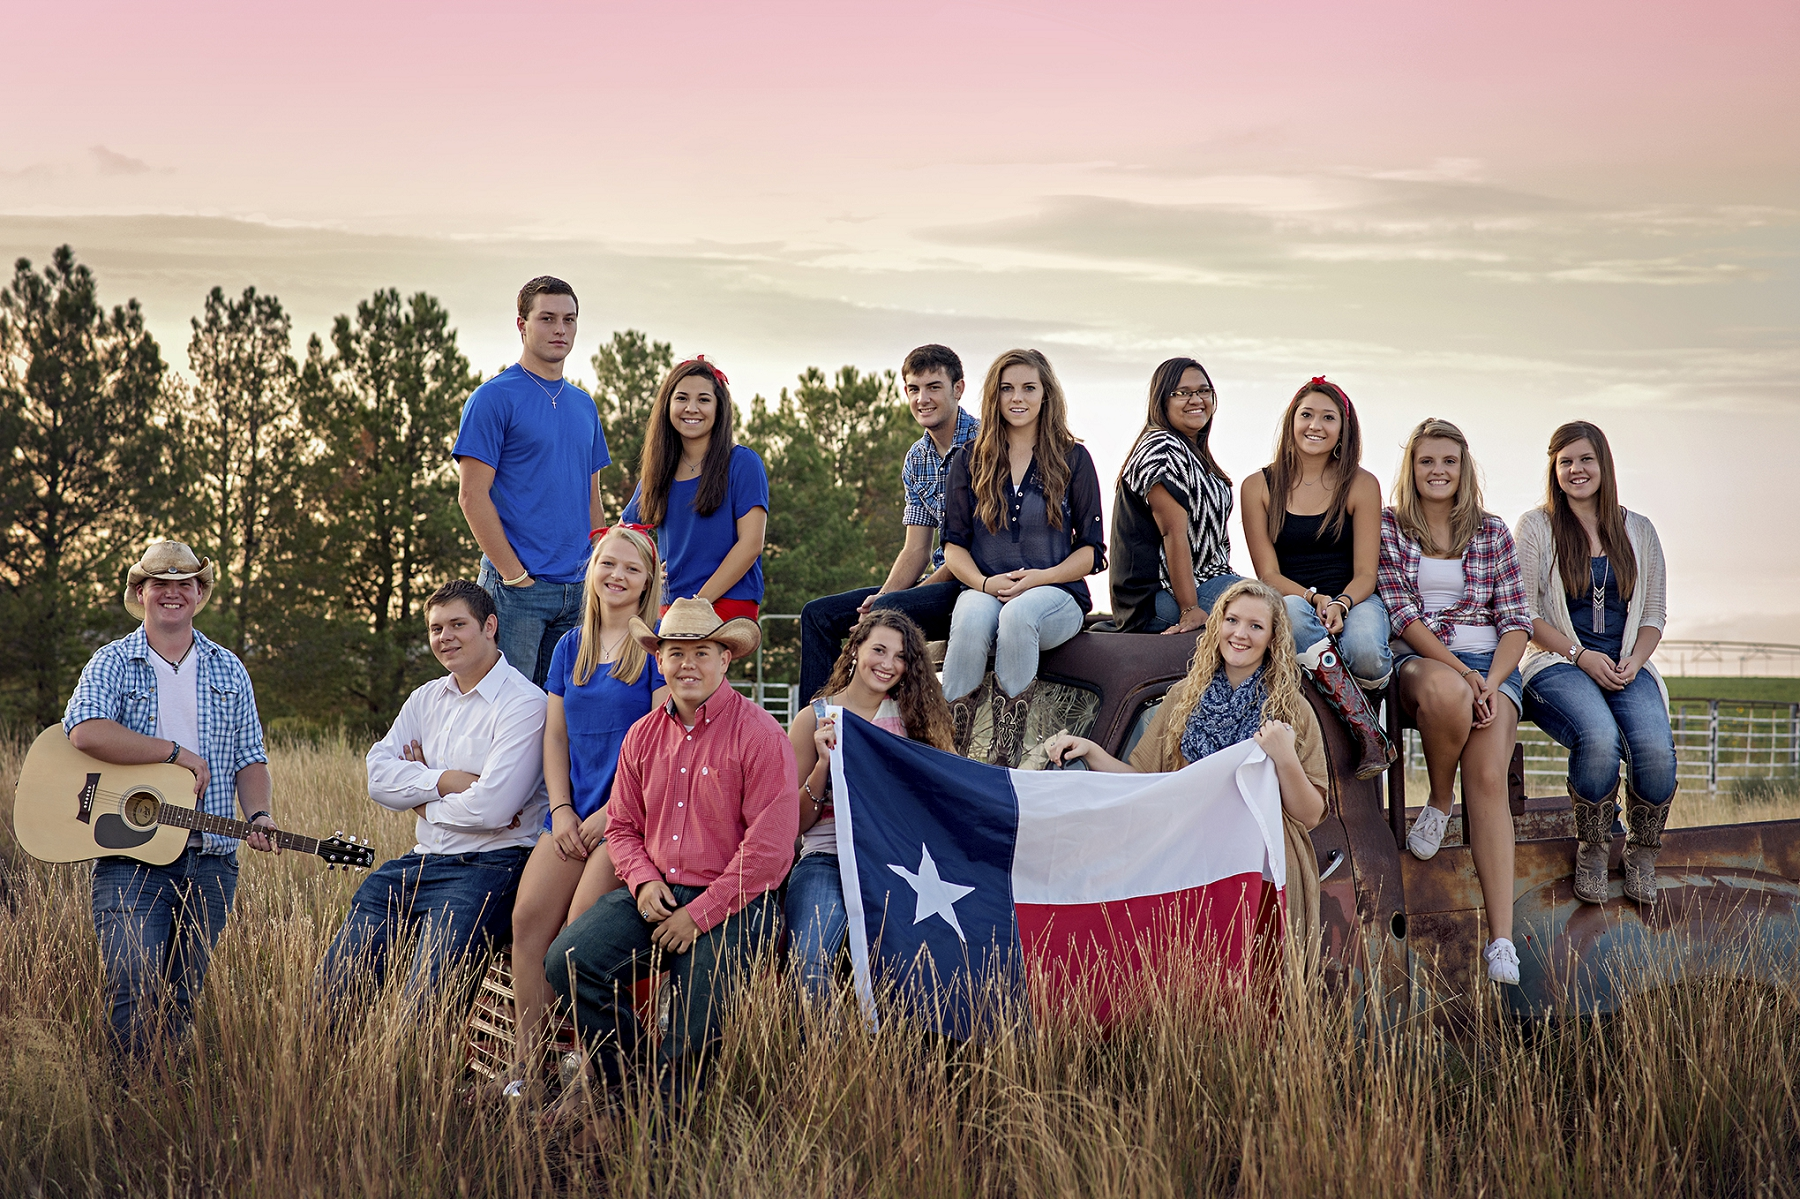 texas, seniors, beauties, Texas flag, Sunset,